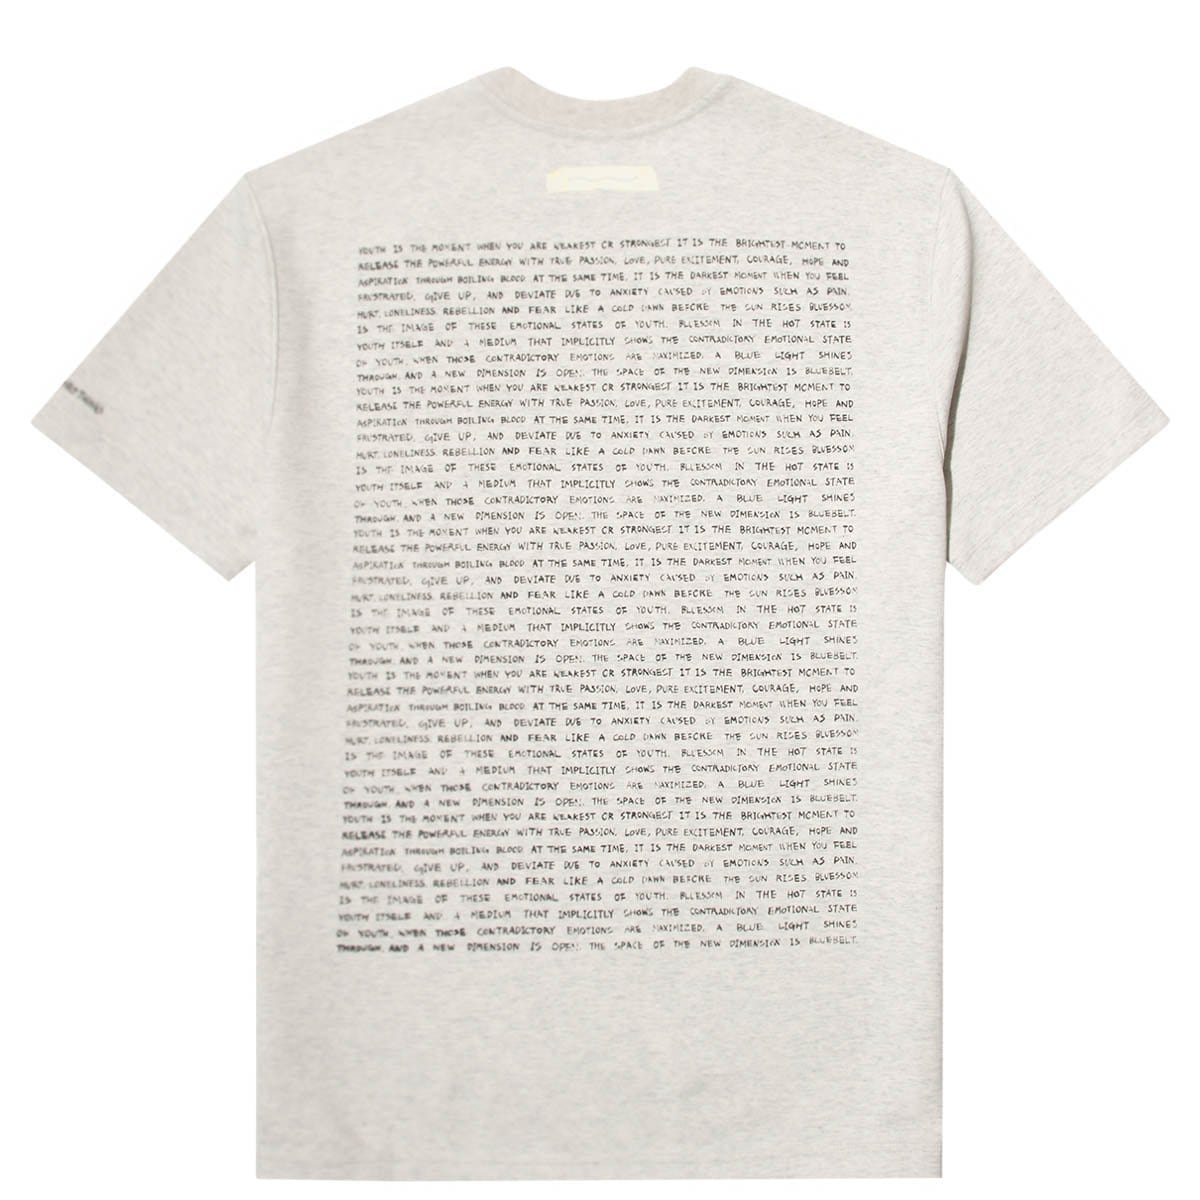 Ader Error T-Shirts PRINT AT FRONT T-SHIRT